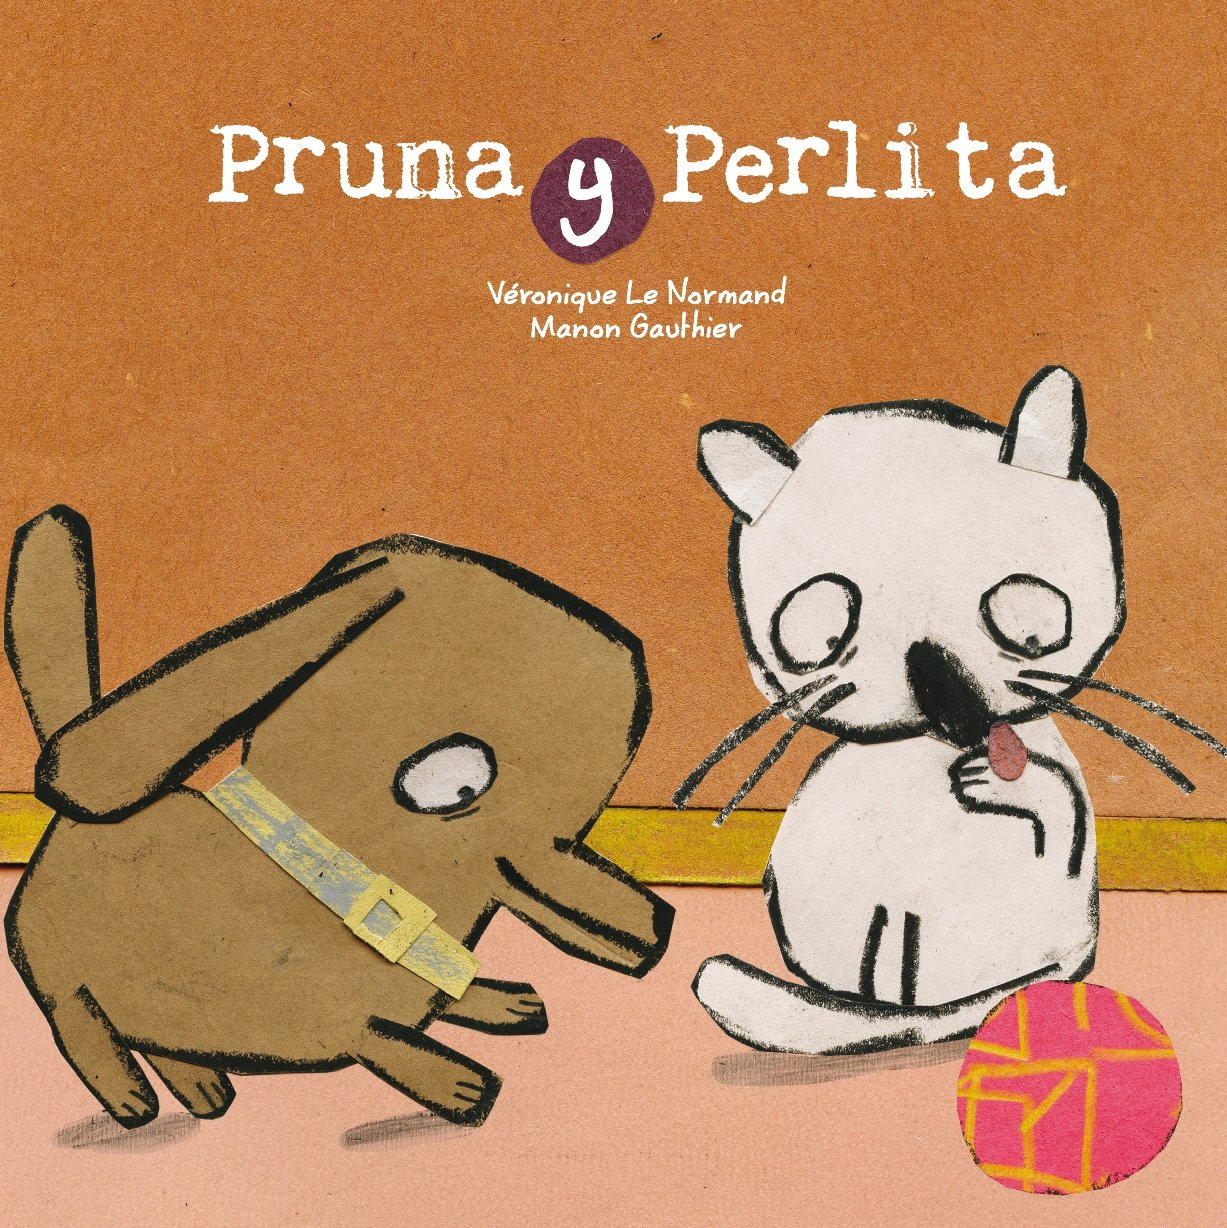 Pruna y Perlita (Spanish Edition) (Spanish) Hardcover – August 15, 2018